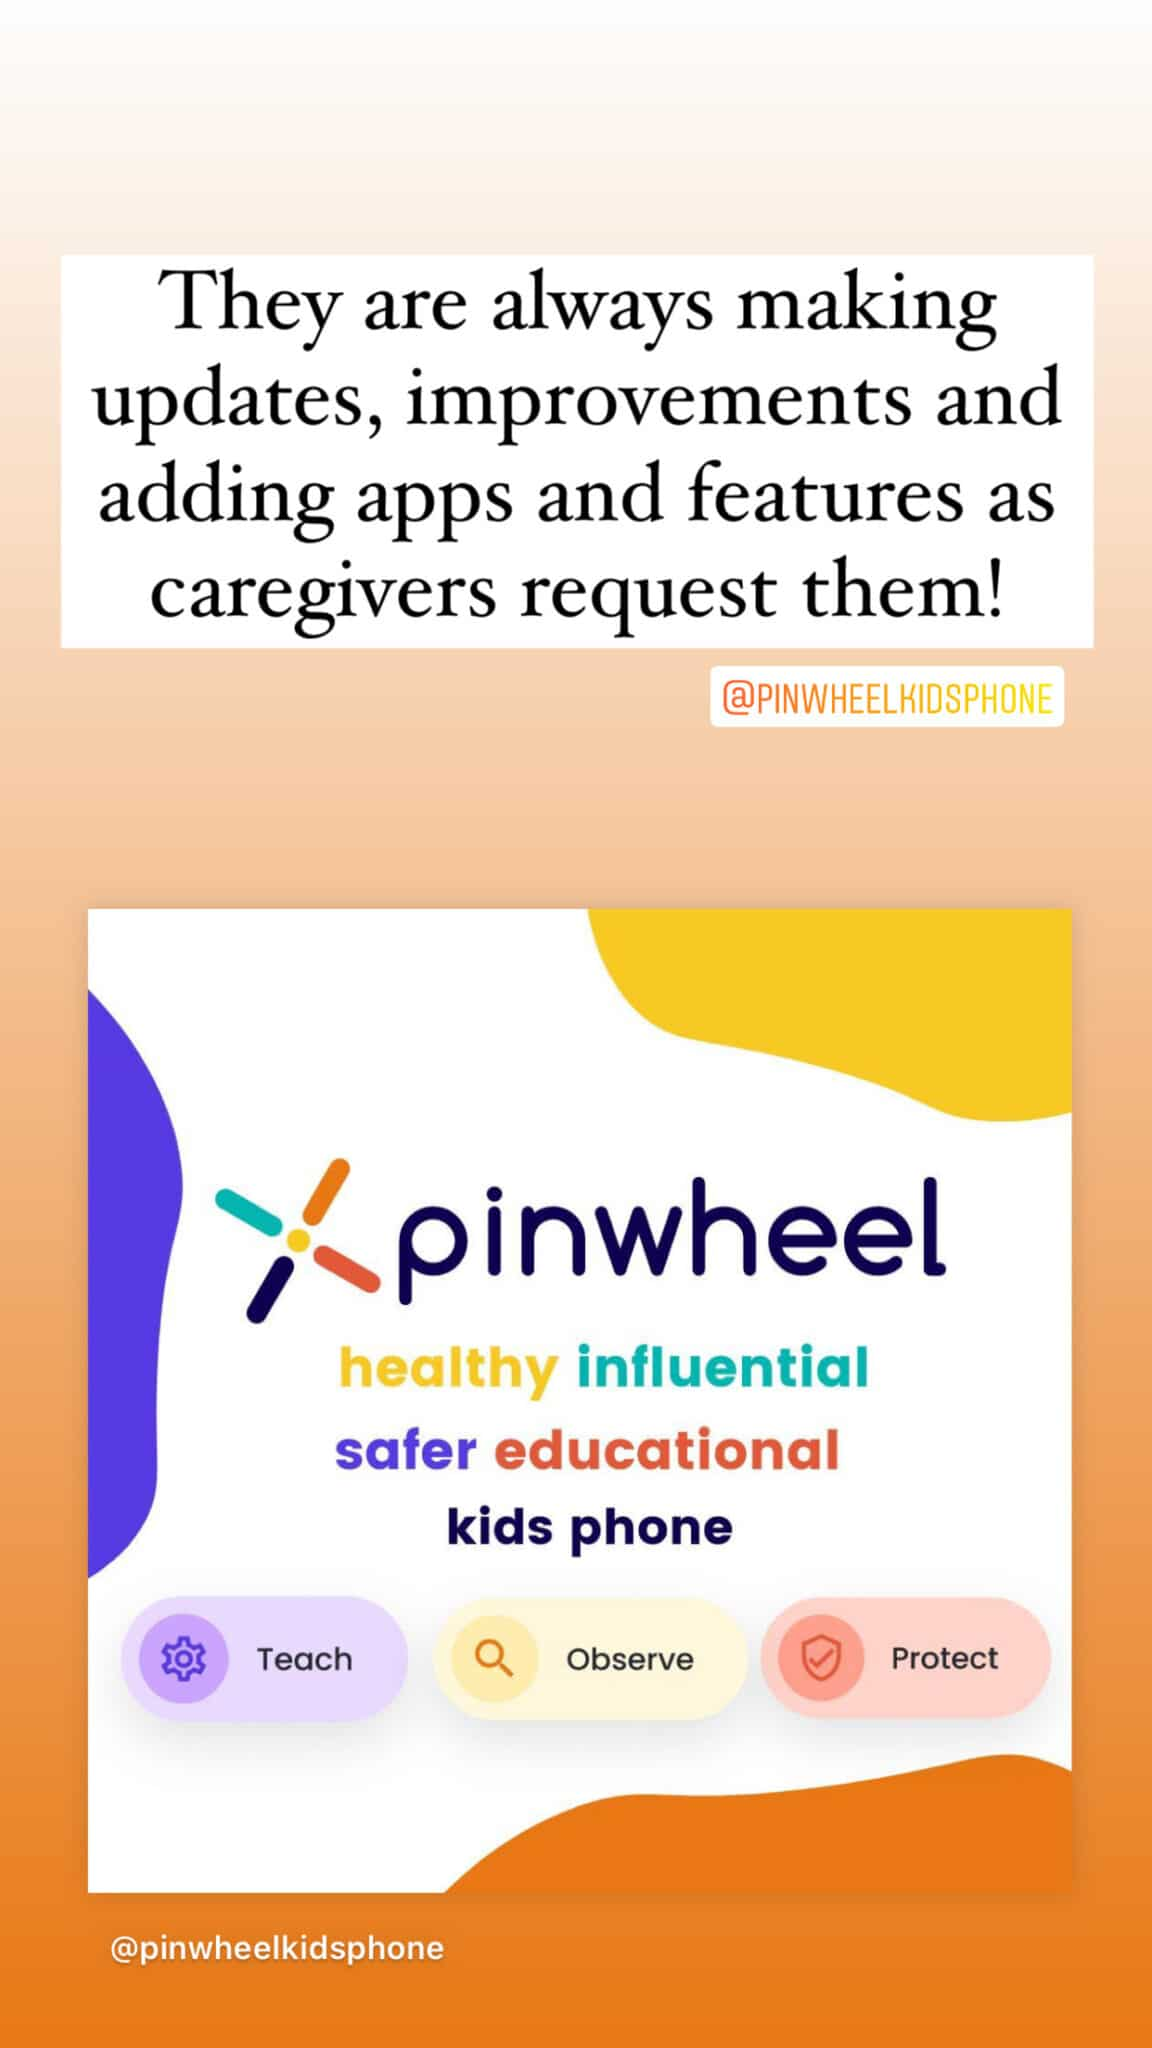 apps on pinwheel can only be added via caregiver console